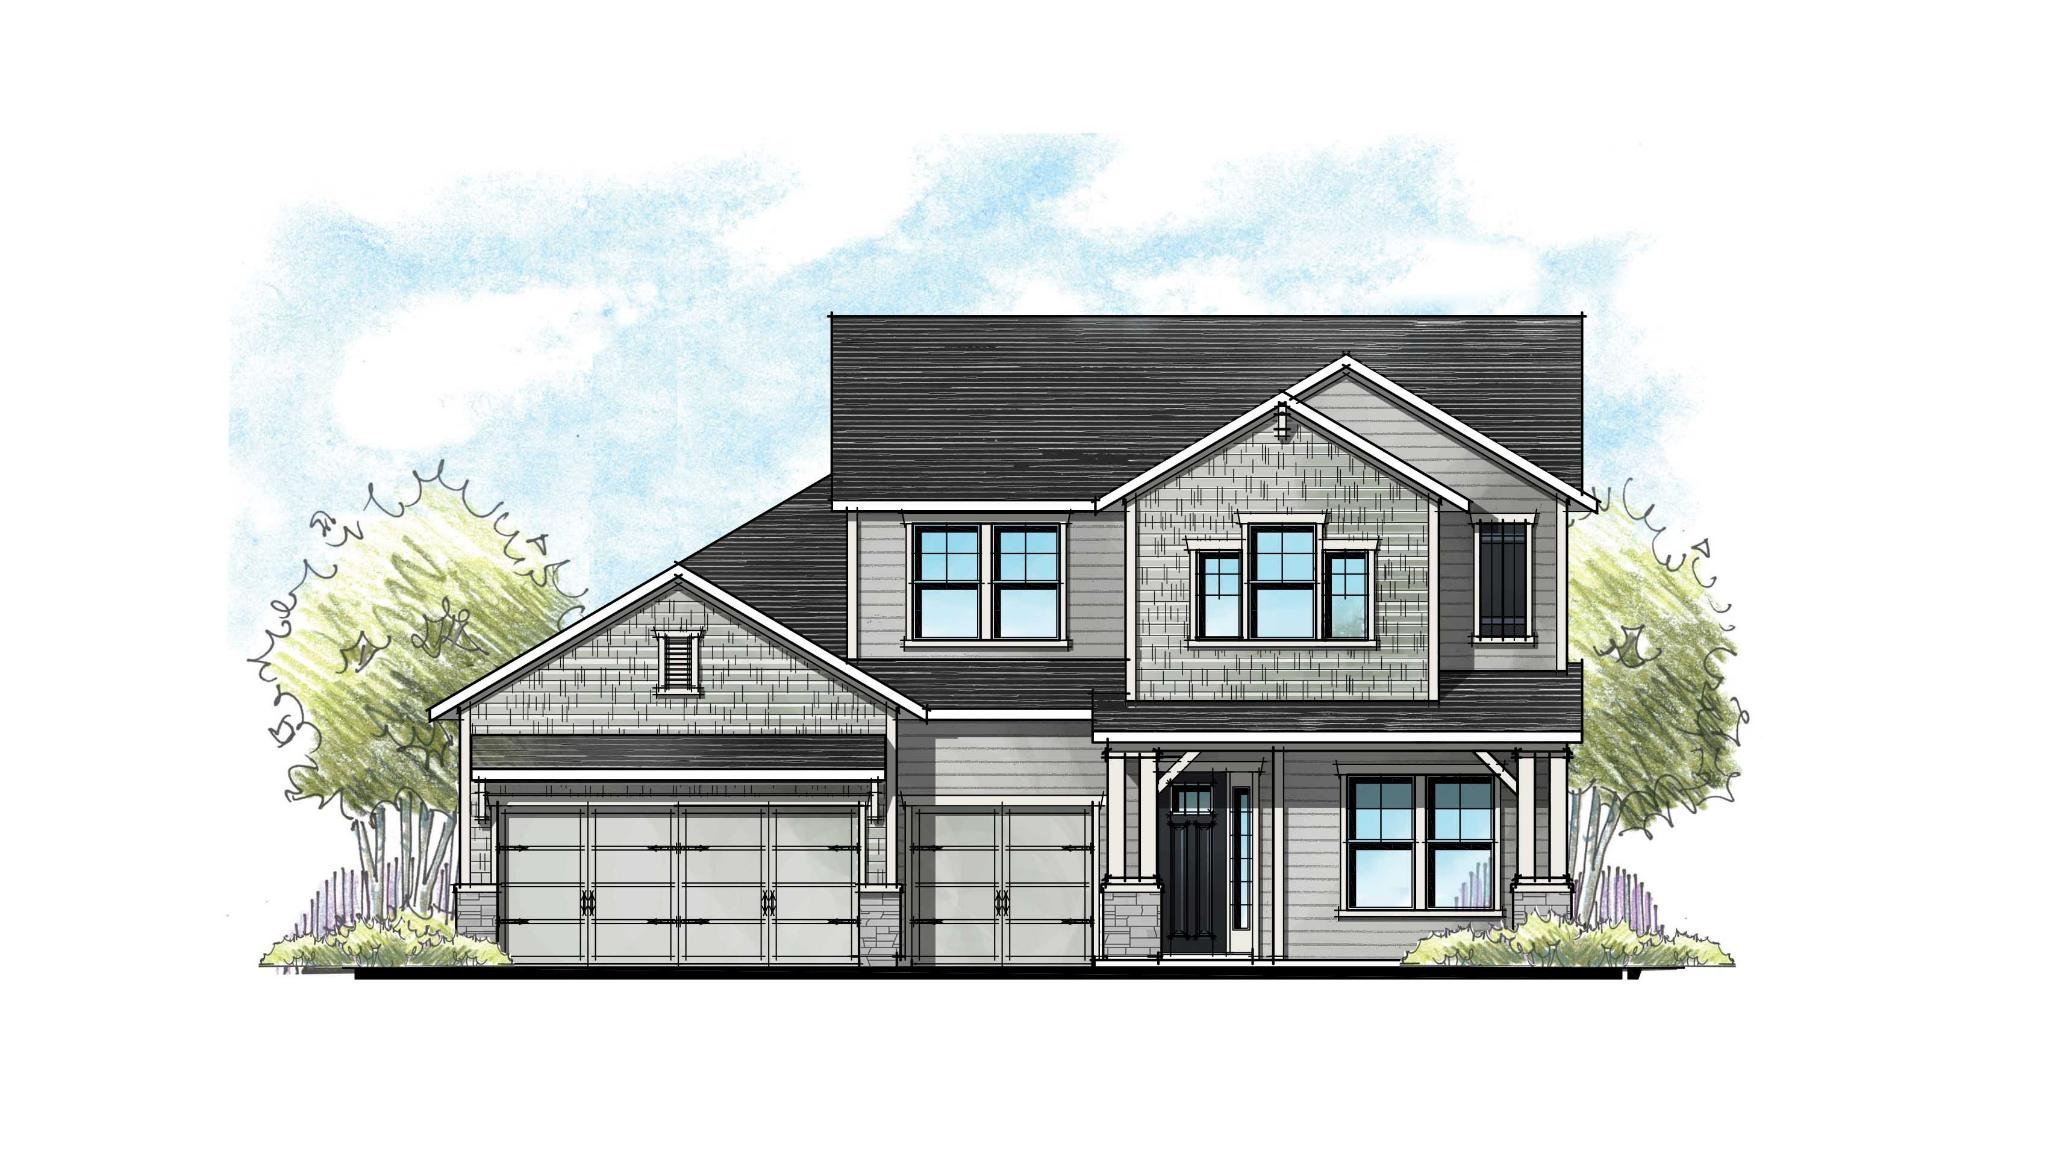 The Lafayette Urban Rustic Elevation 4  3-Car Garage